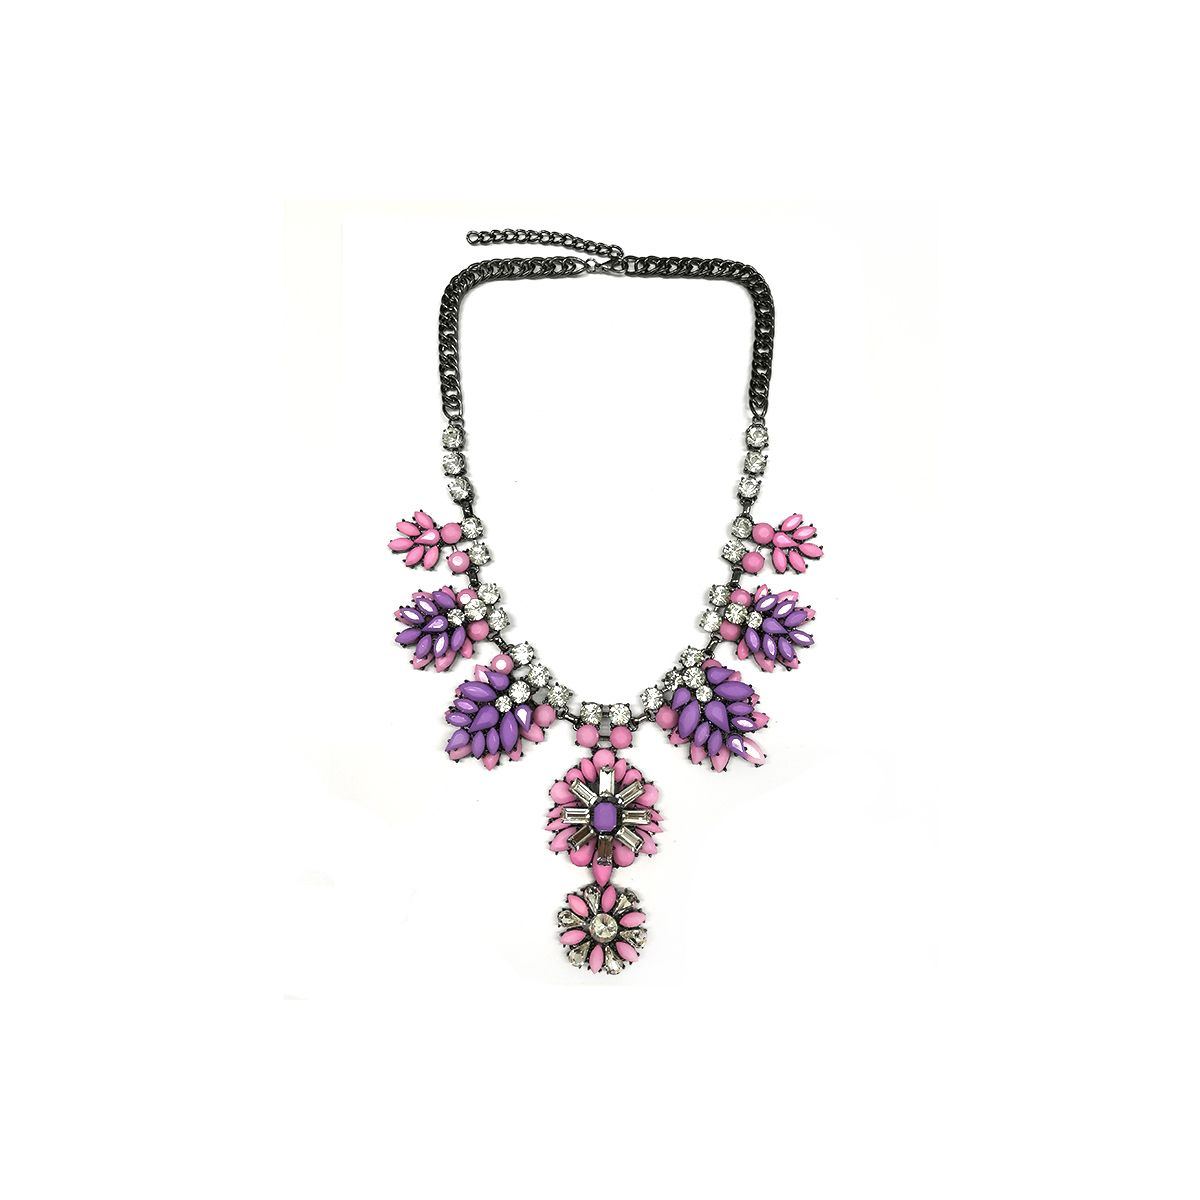 Flower Necklace - Black/Lilac (NH1409008LL)